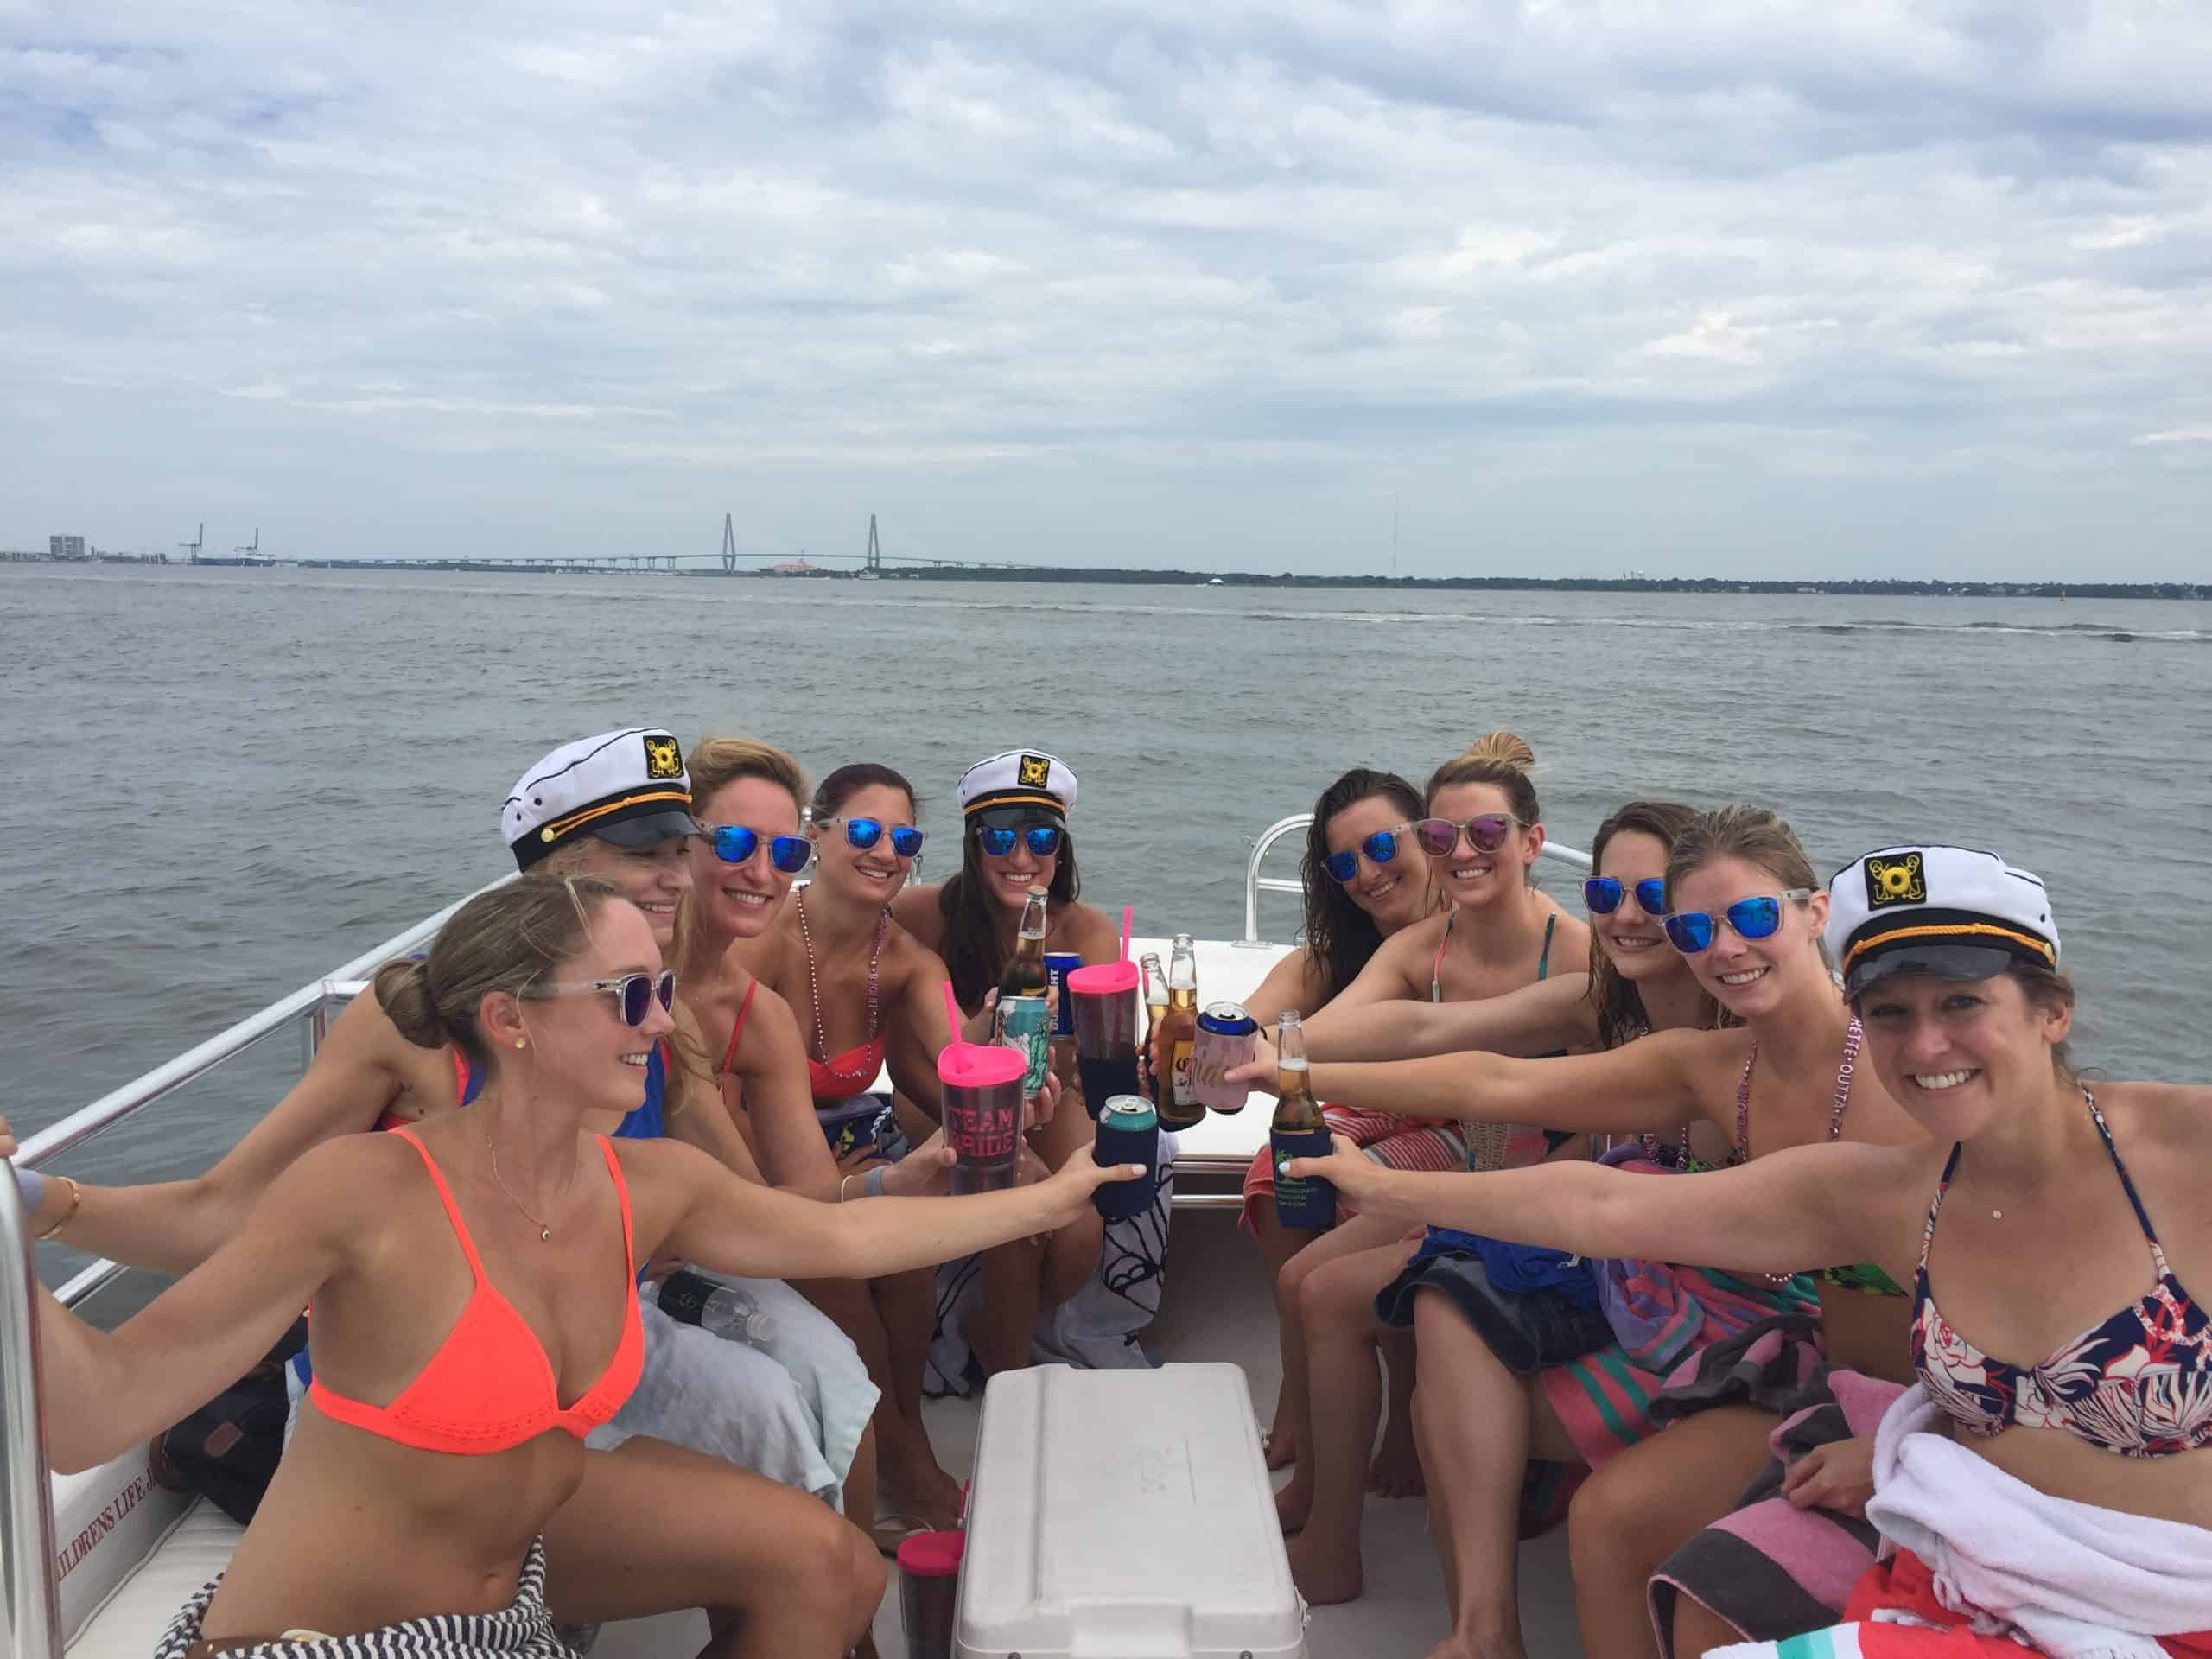 Group of women using their drinks to cheers together on the boat. Private booze cruise